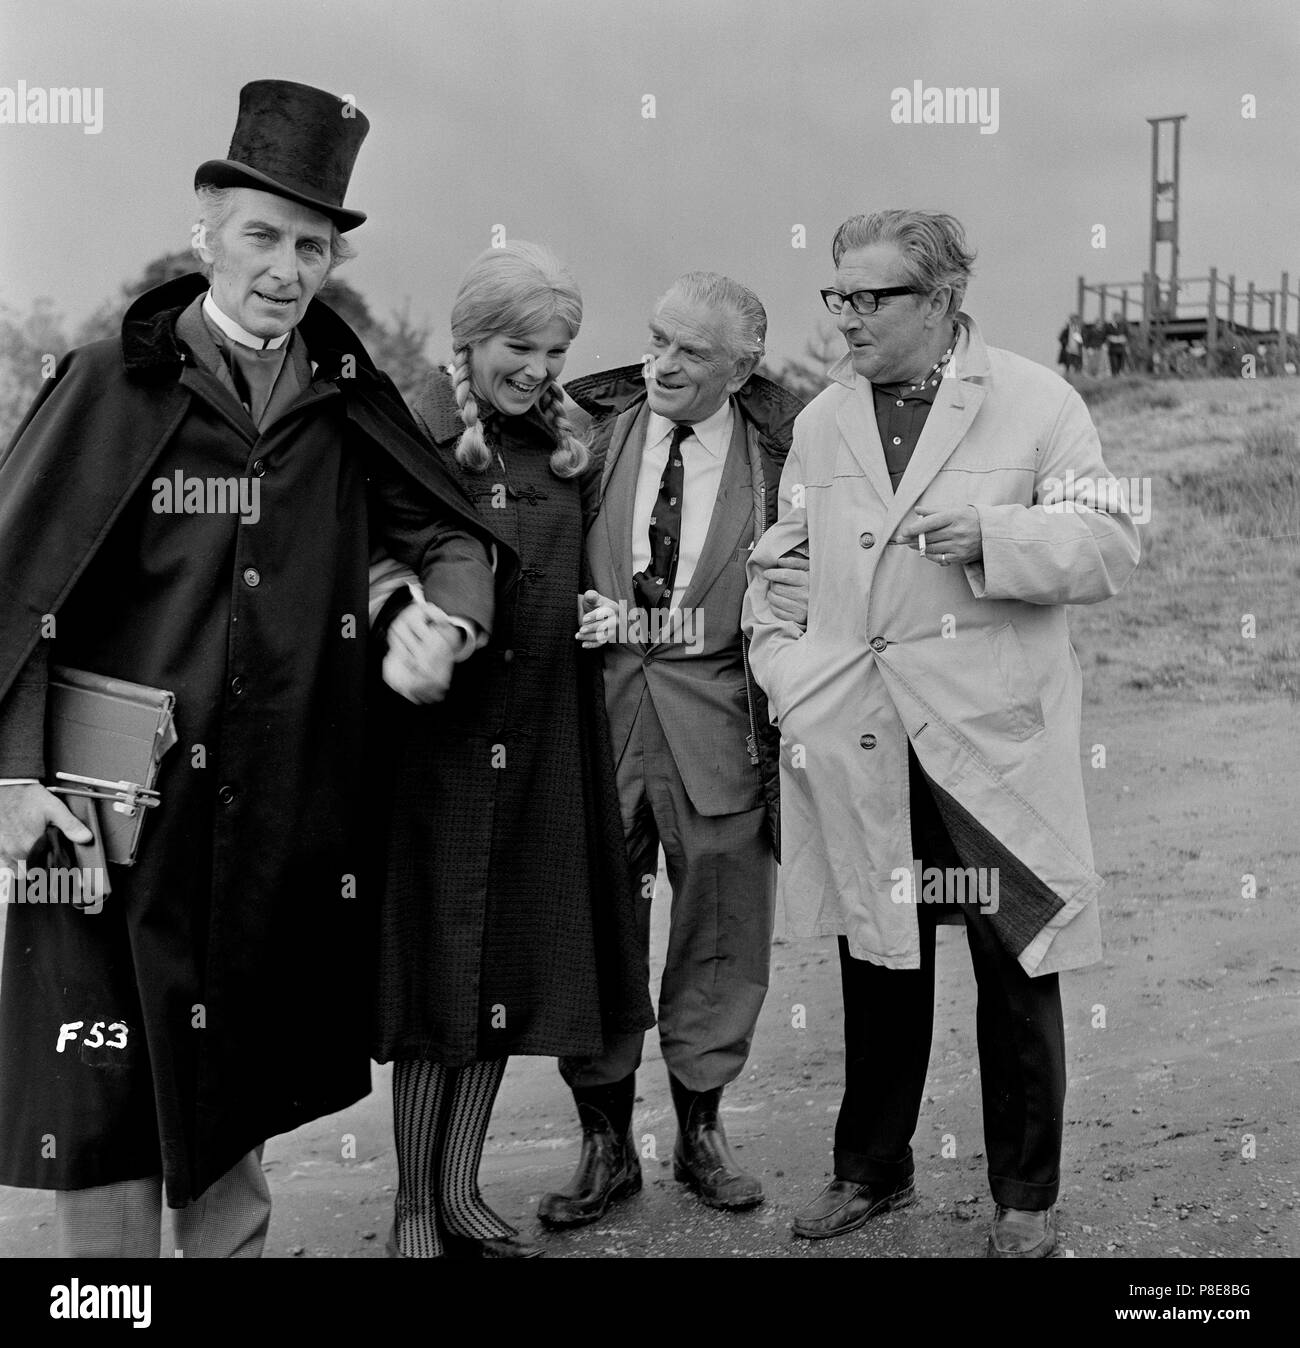 Frankenstein Created Woman (1967) Peter Cushing, Susan Denberg, Director Terence Fisher, Producer Anthony Nelson Keys,     Date: 1967 - Stock Image